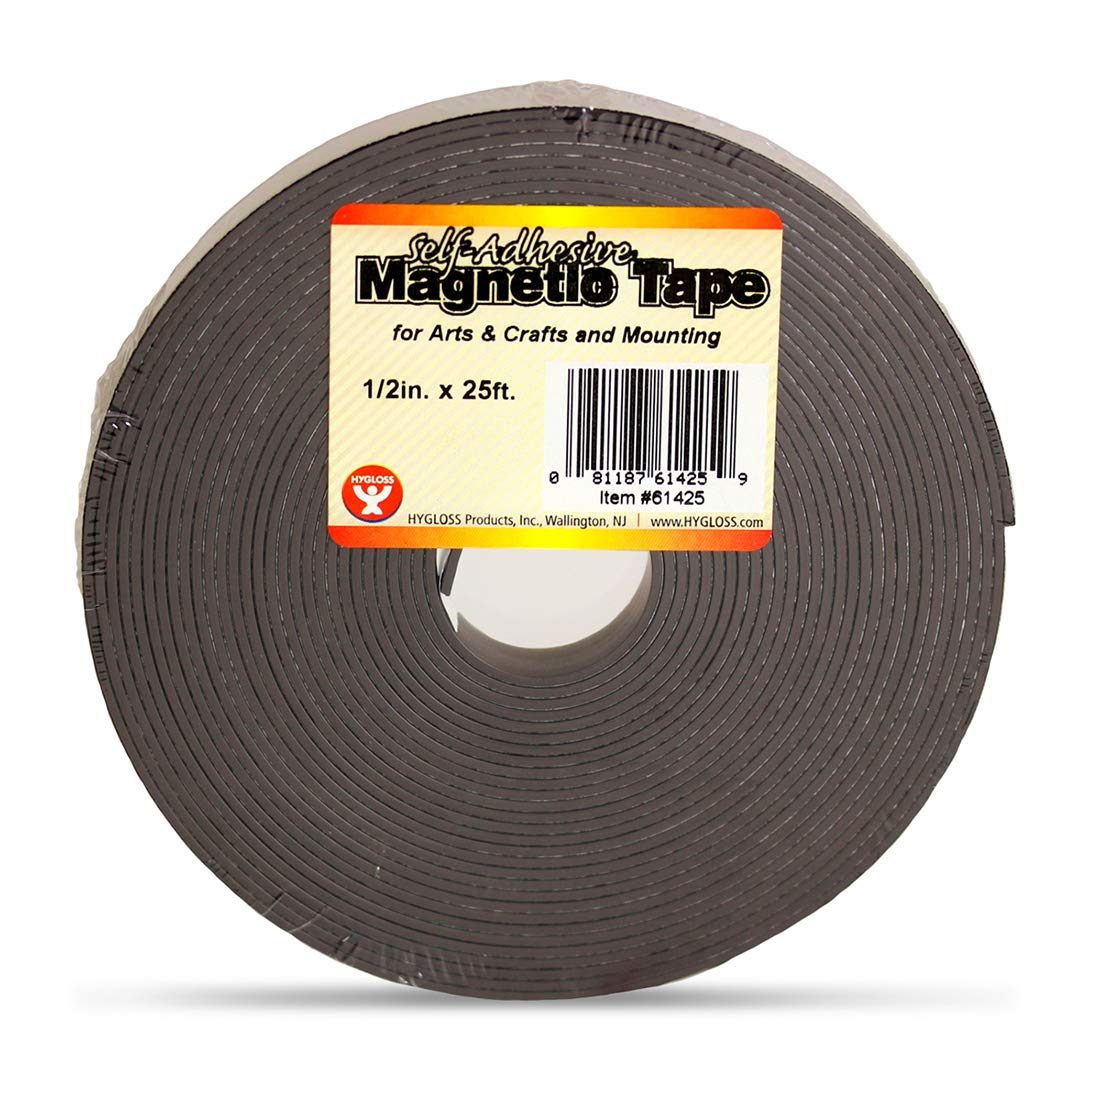 Hygloss Products, Inc. Magnetic